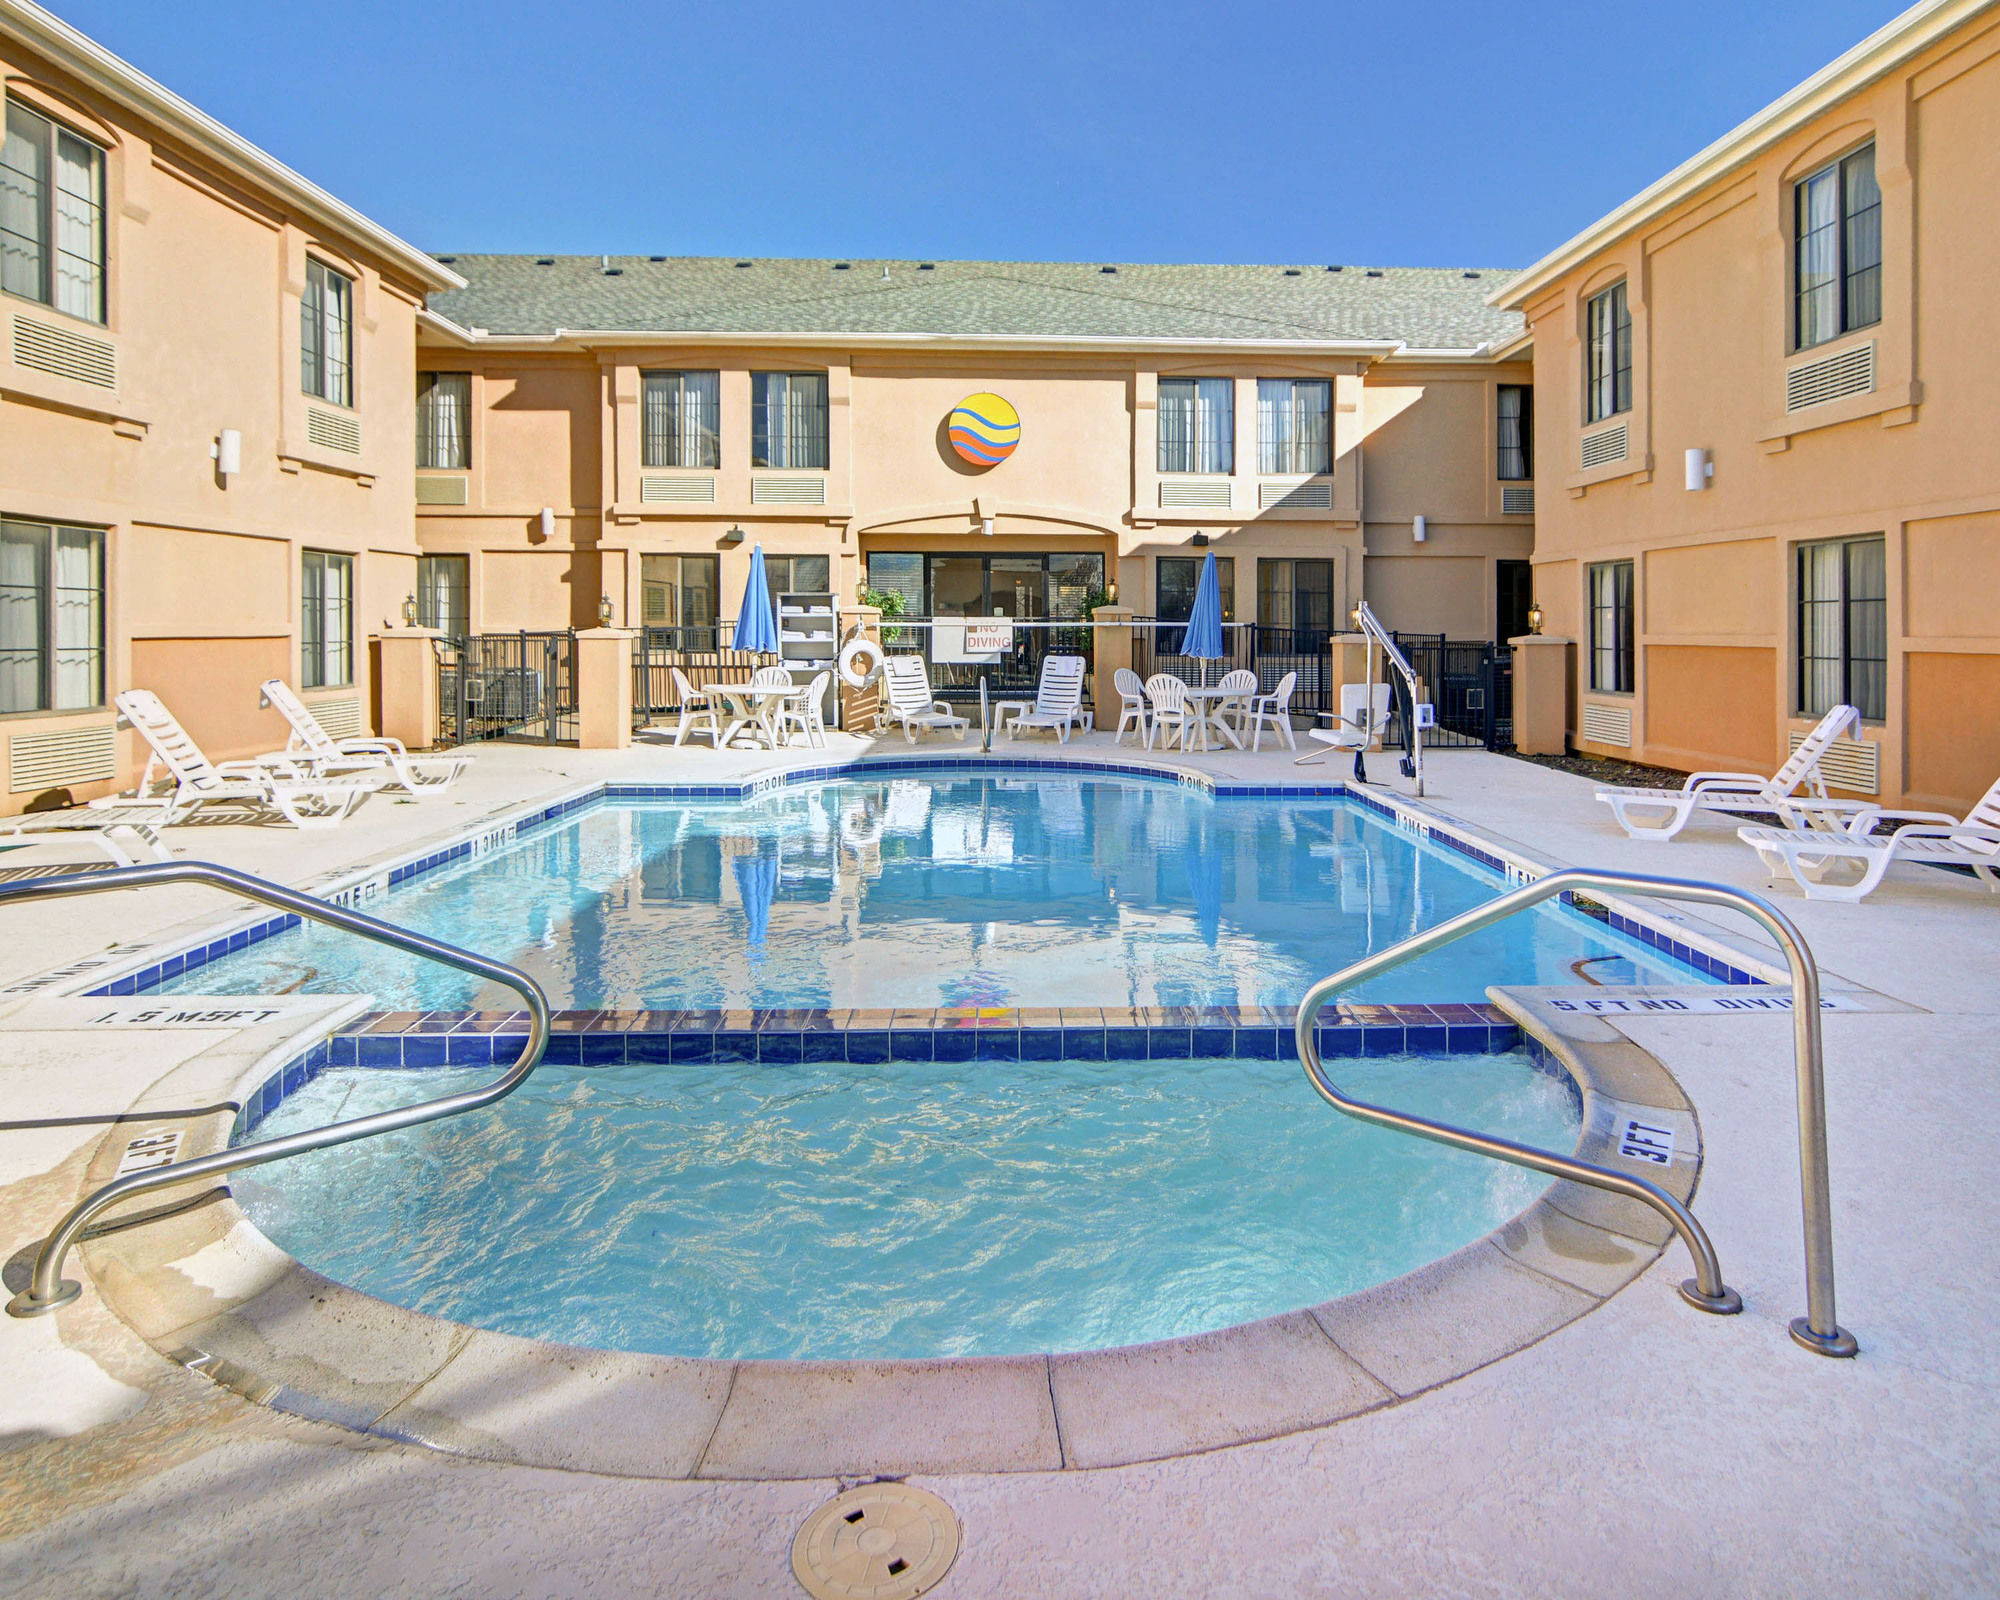 Discount Coupon For Comfort Inn Suites Dfw Airport South In Irving